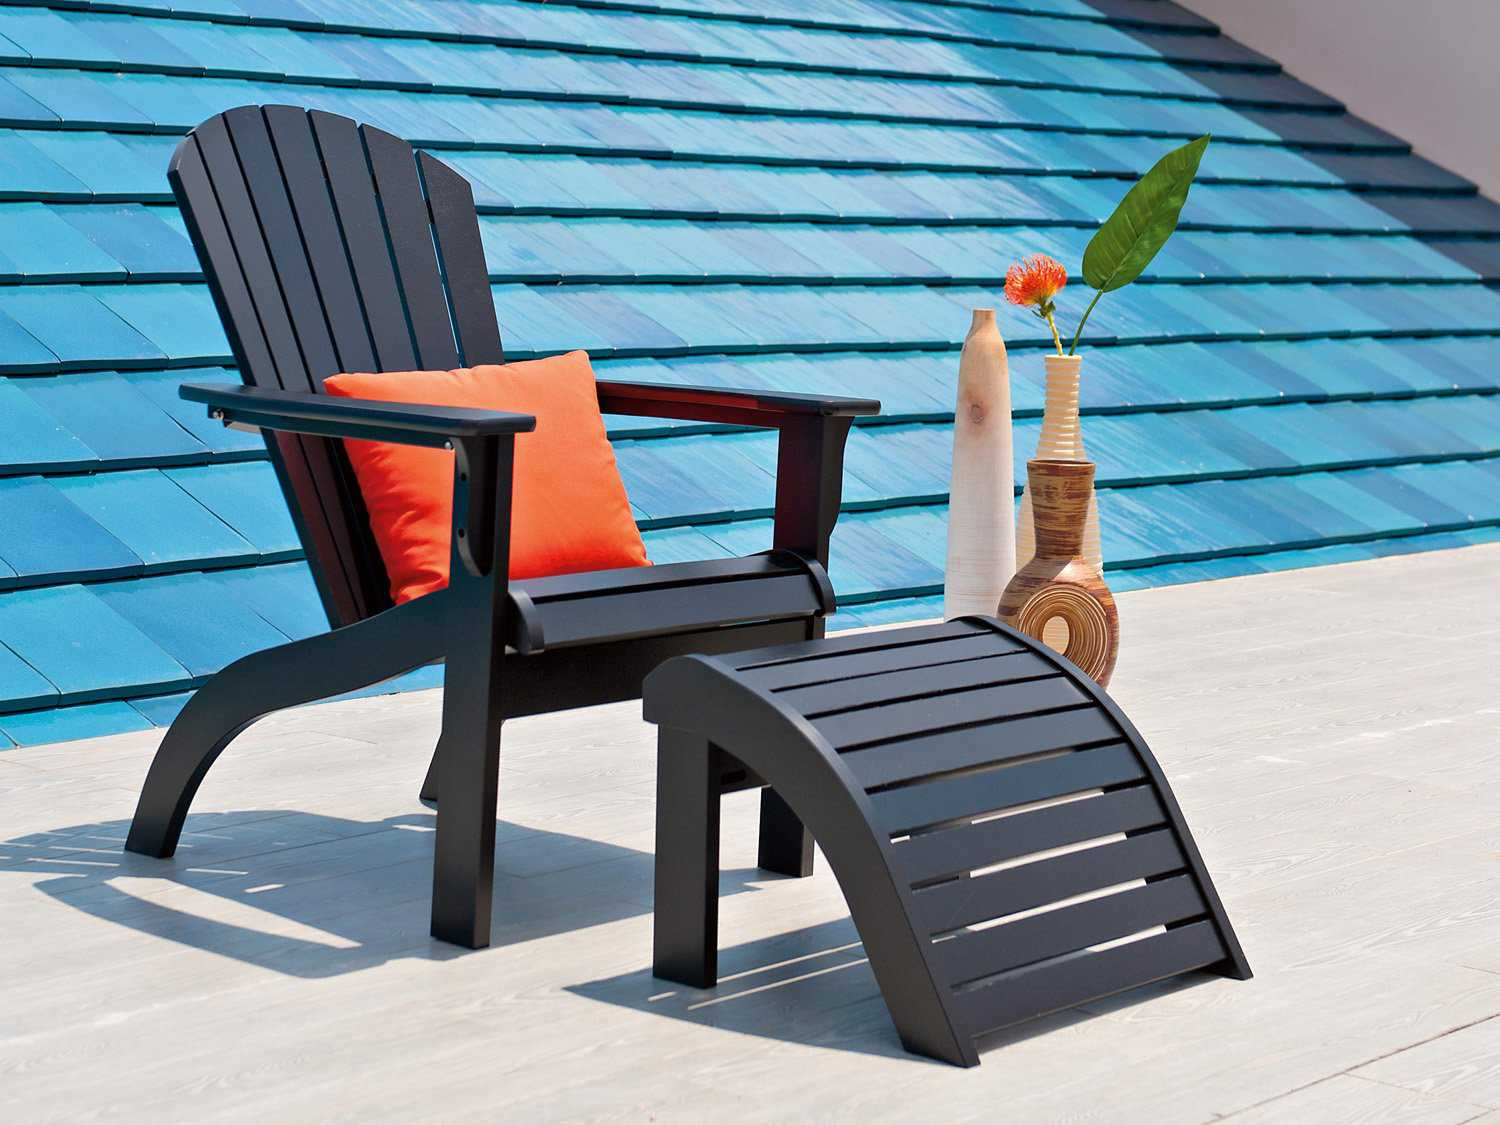 recycled plastic adirondack chairs. Taking Care Of Recycled Plastic Adirondack Chairs Is Simple. Many Are UV Protected During Manufacturing, So You Don\u0027t Have To Worry